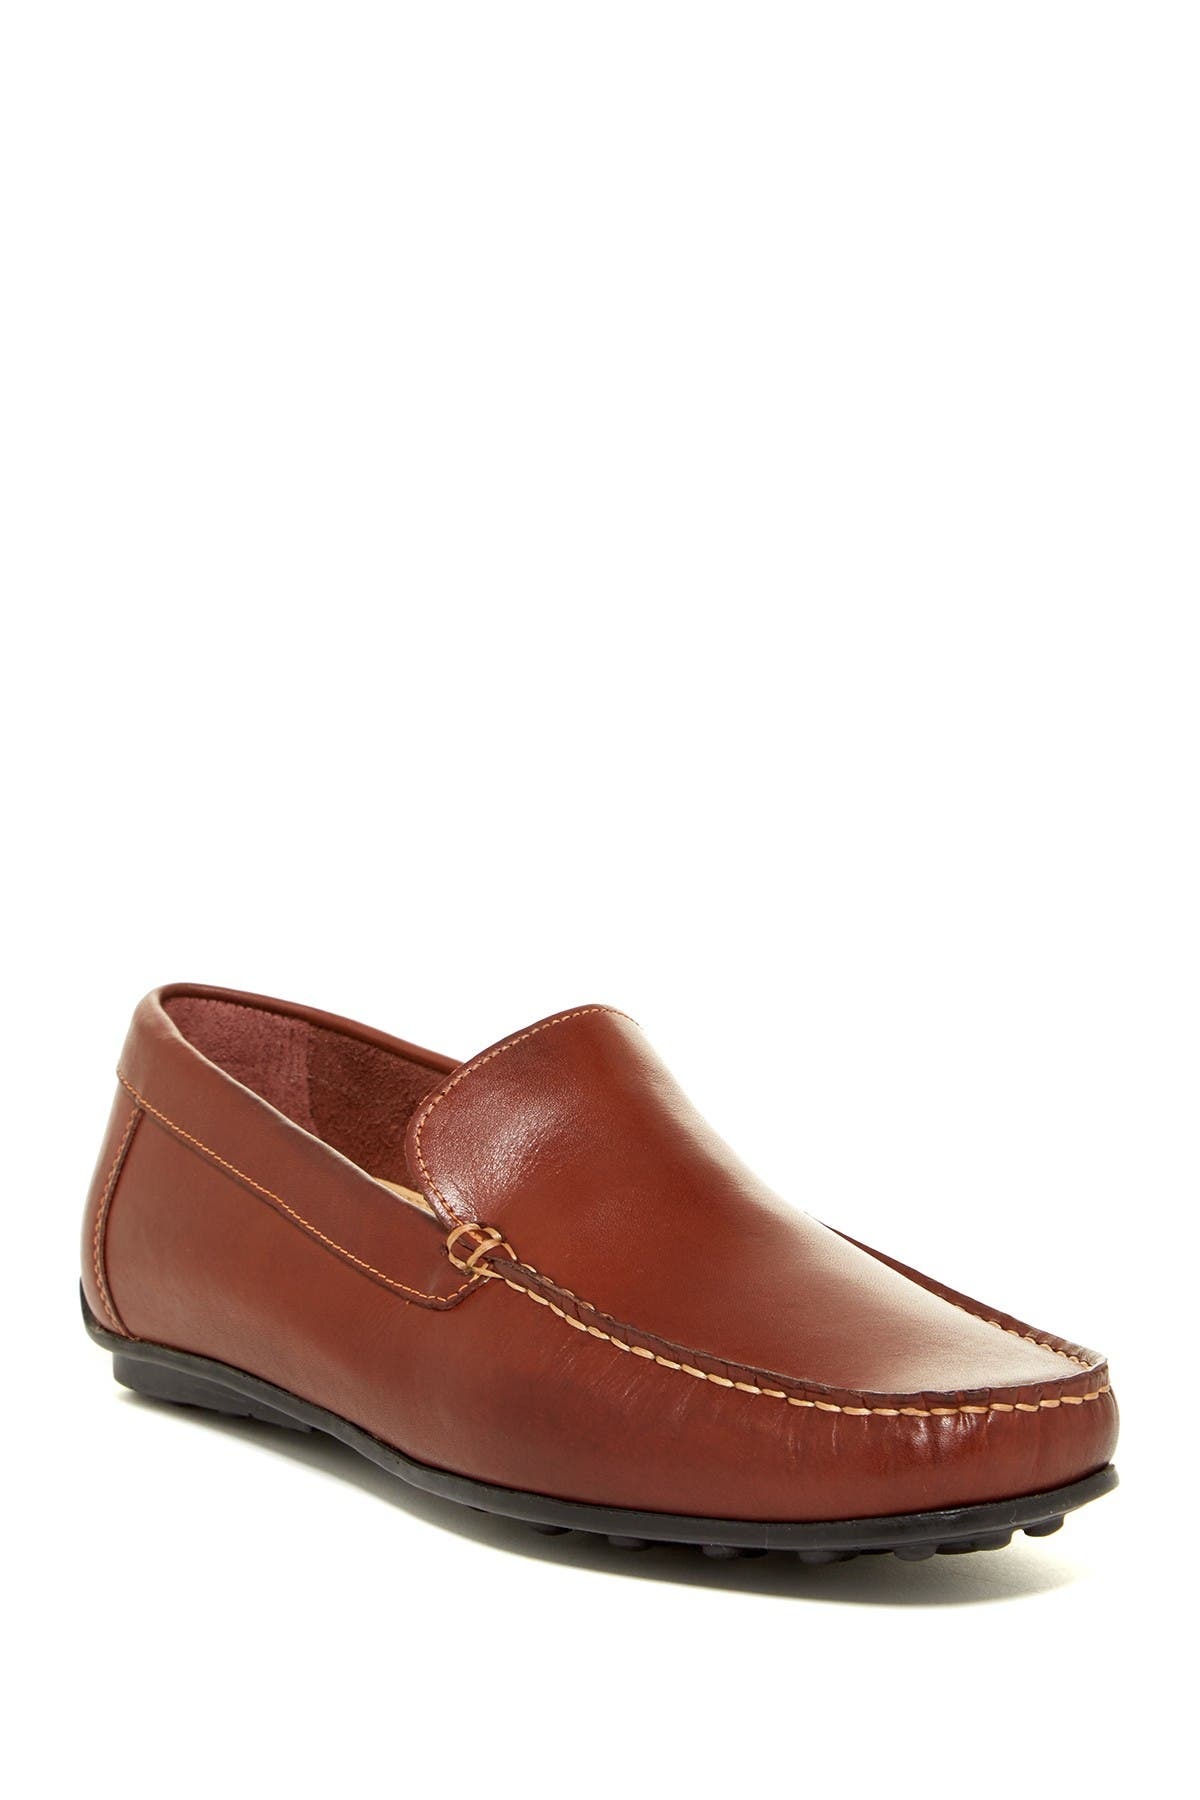 Image of WALLIN & BROS Lauderdale Leather Loafer